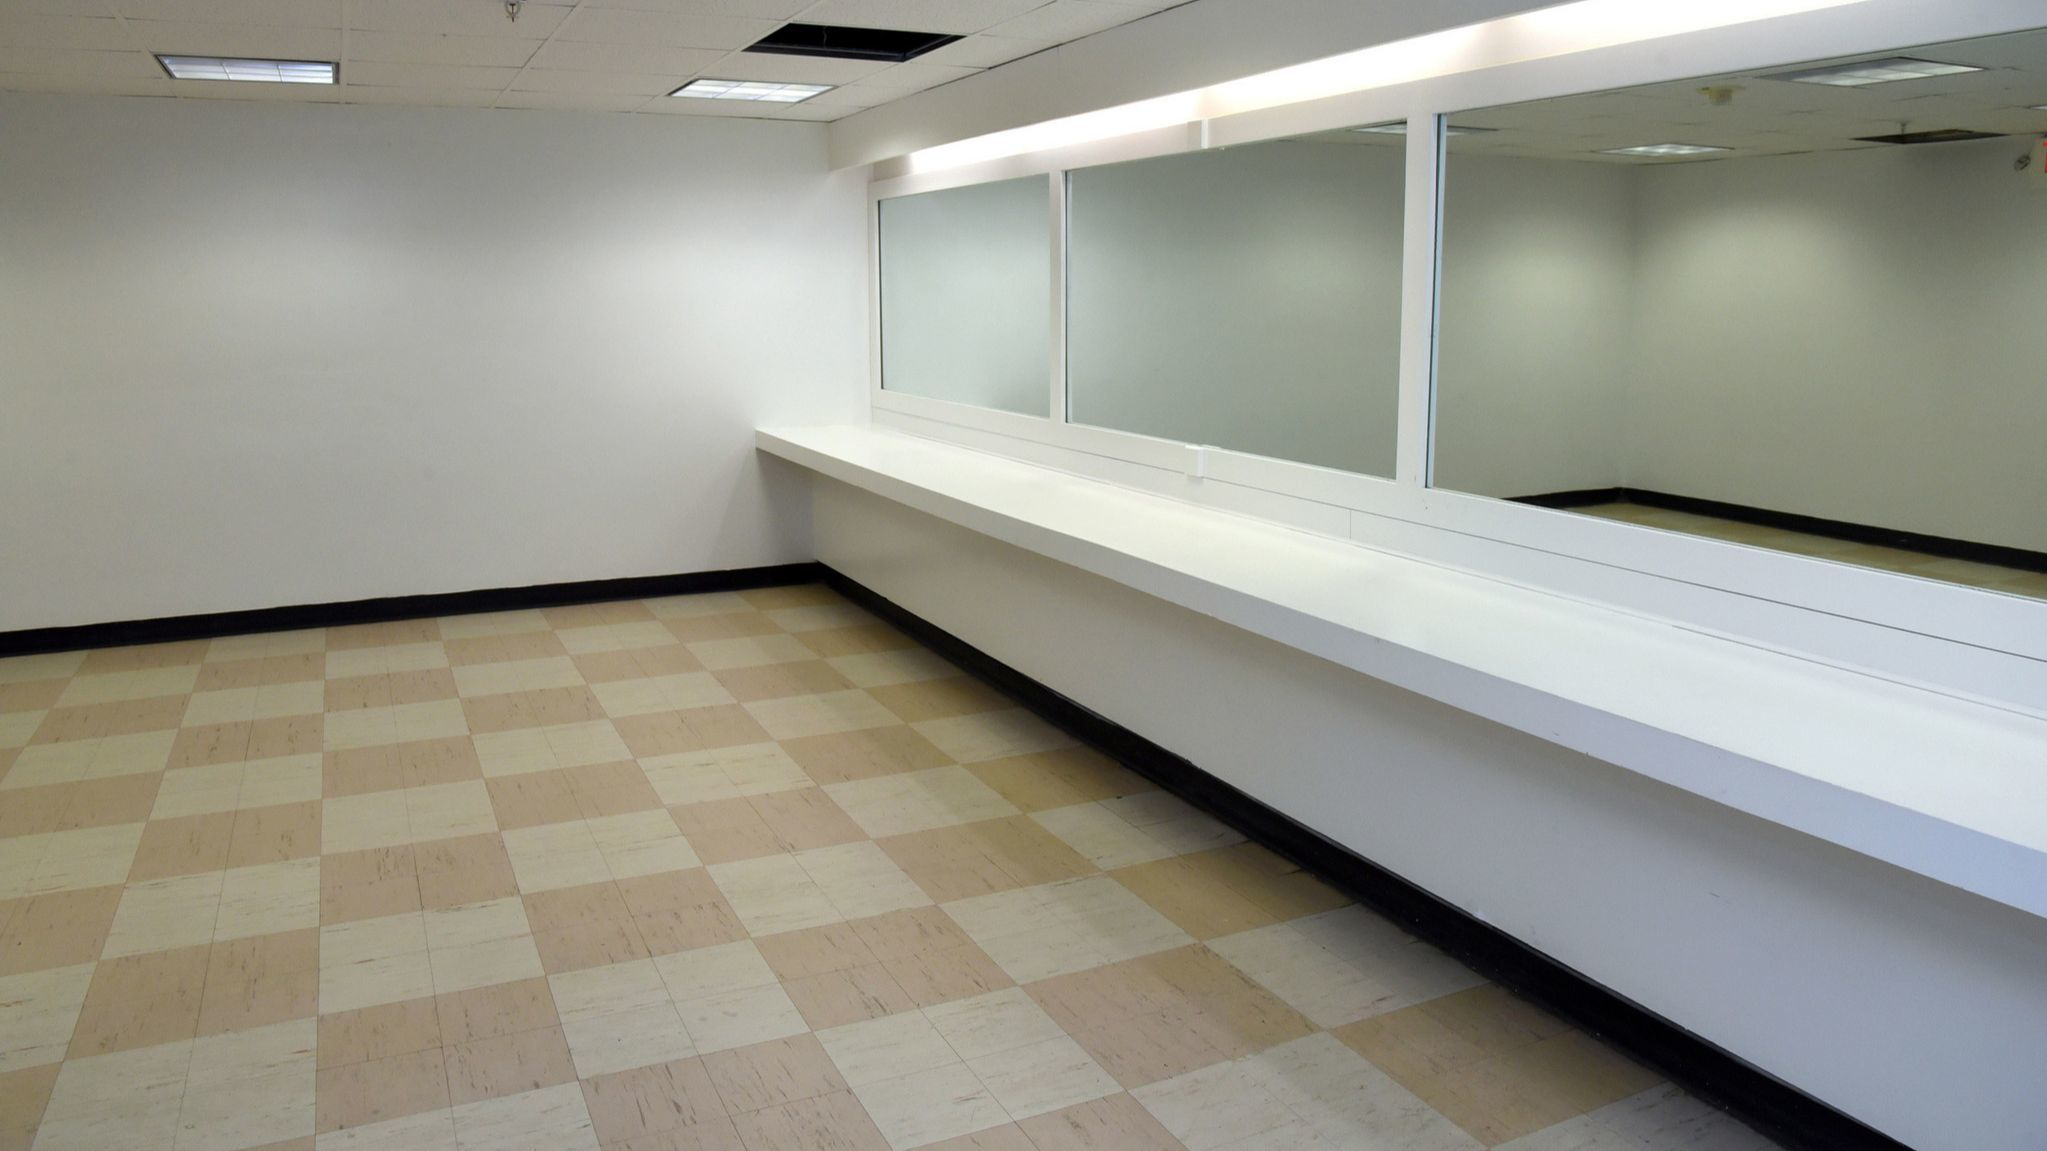 A restroom at Pimlico Race Course